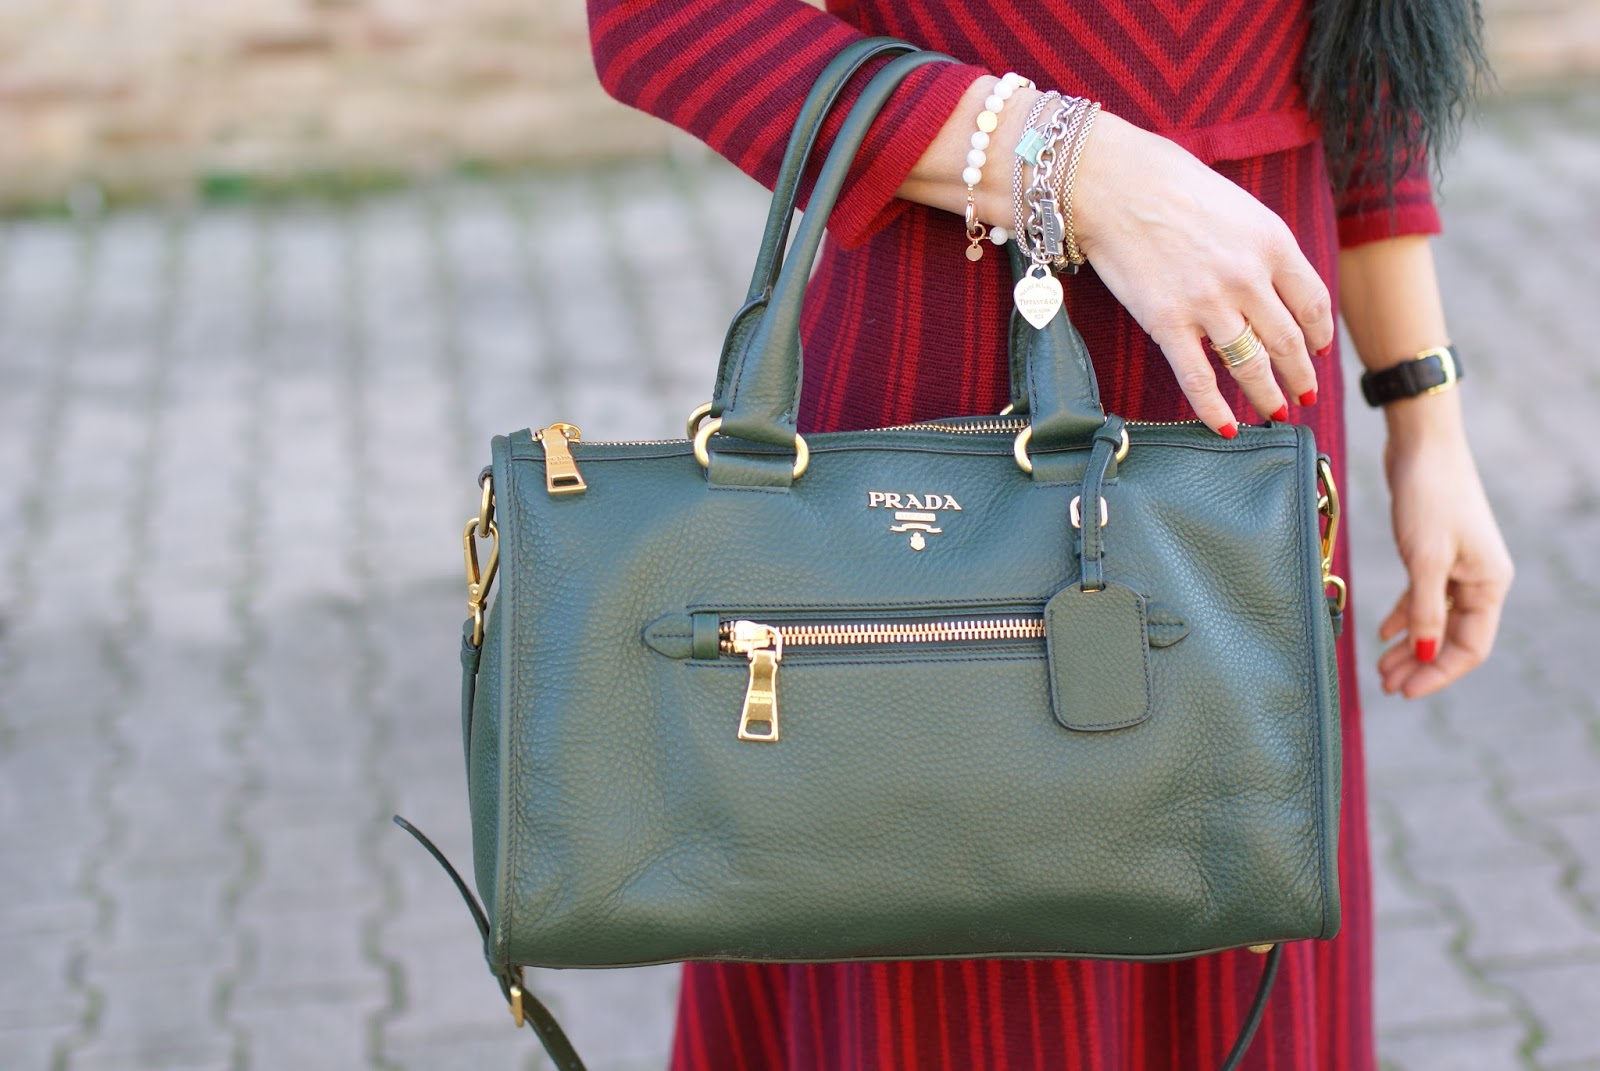 Prada boston bag on Fashion and Cookies fashion blog, fashion blogger style